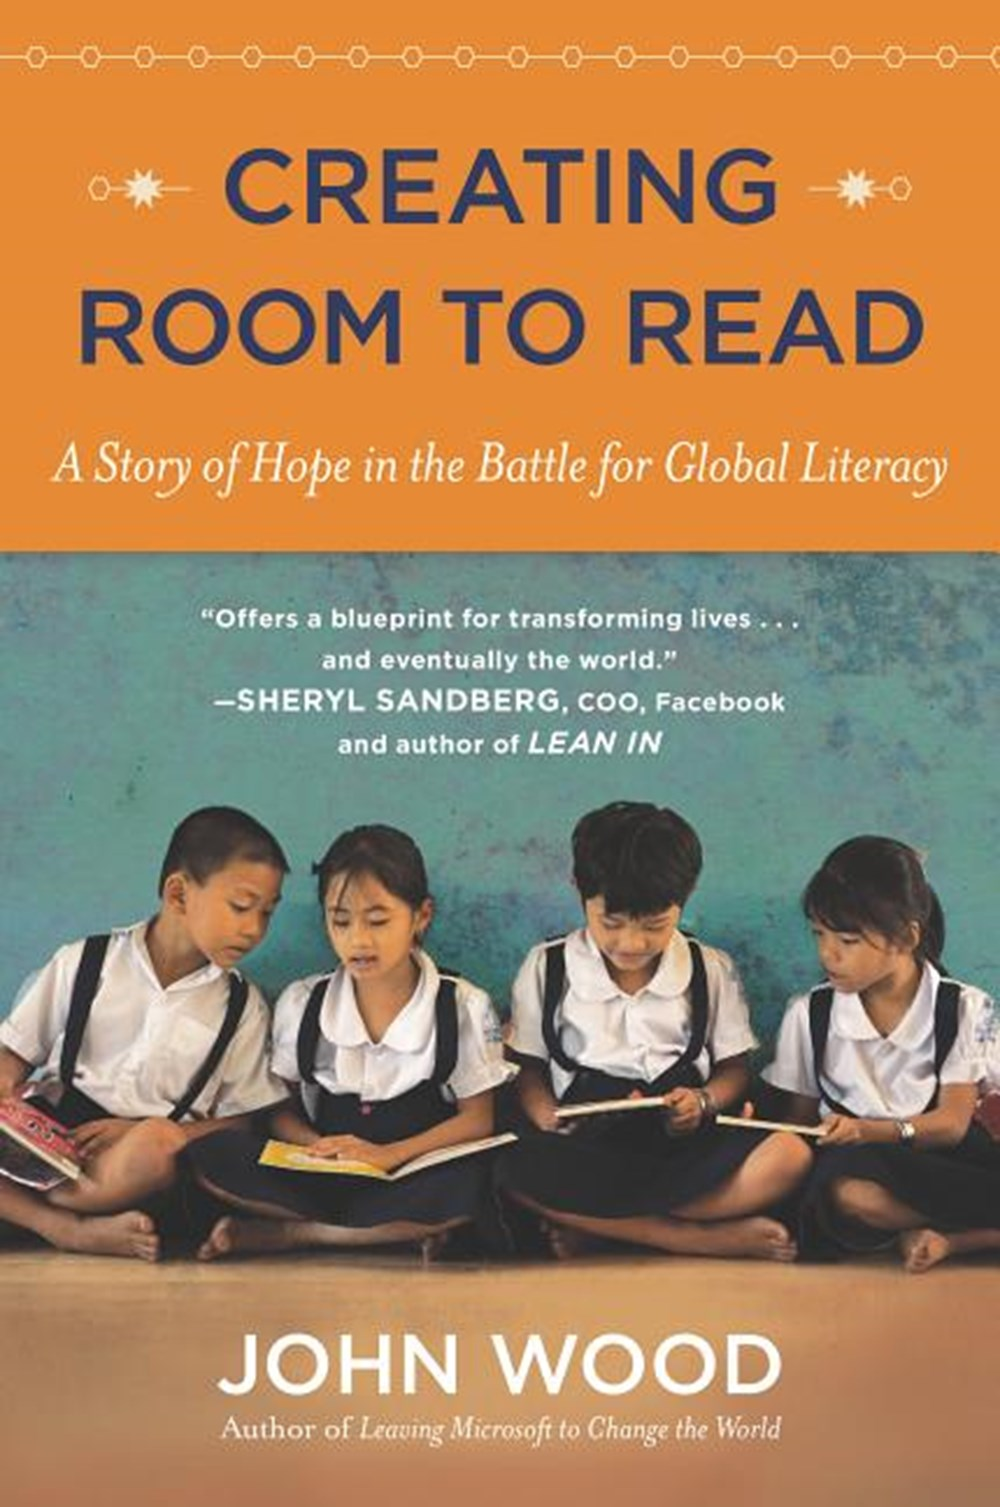 Creating Room to Read A Story of Hope in the Battle for Global Literacy